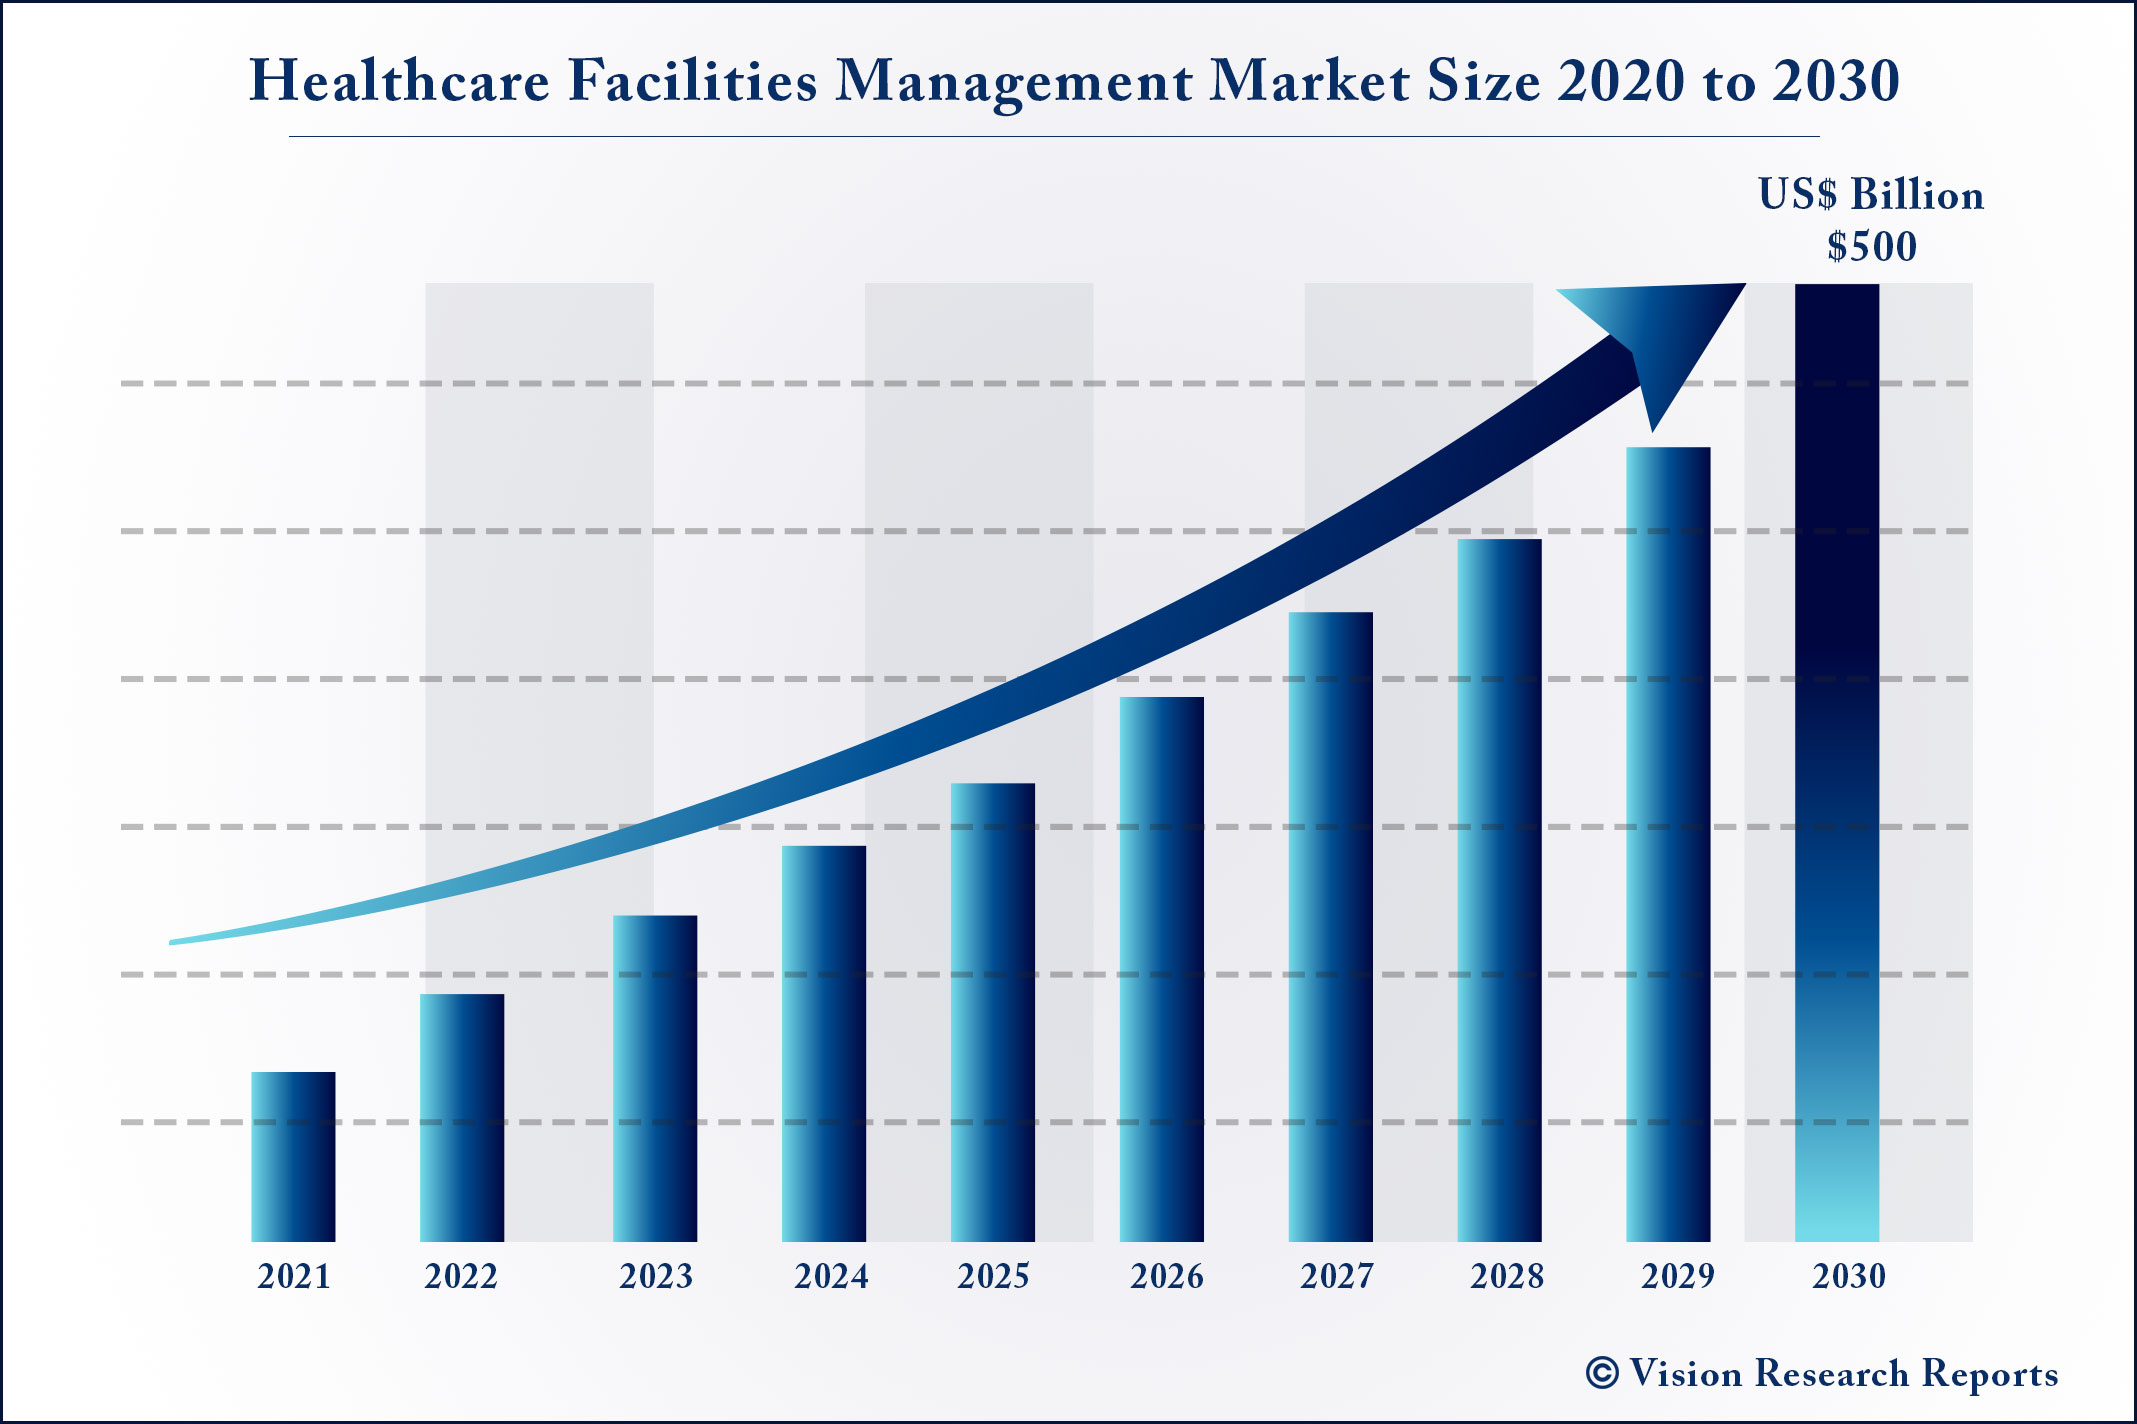 Healthcare Facilities Management Market Size 2020 to 2030